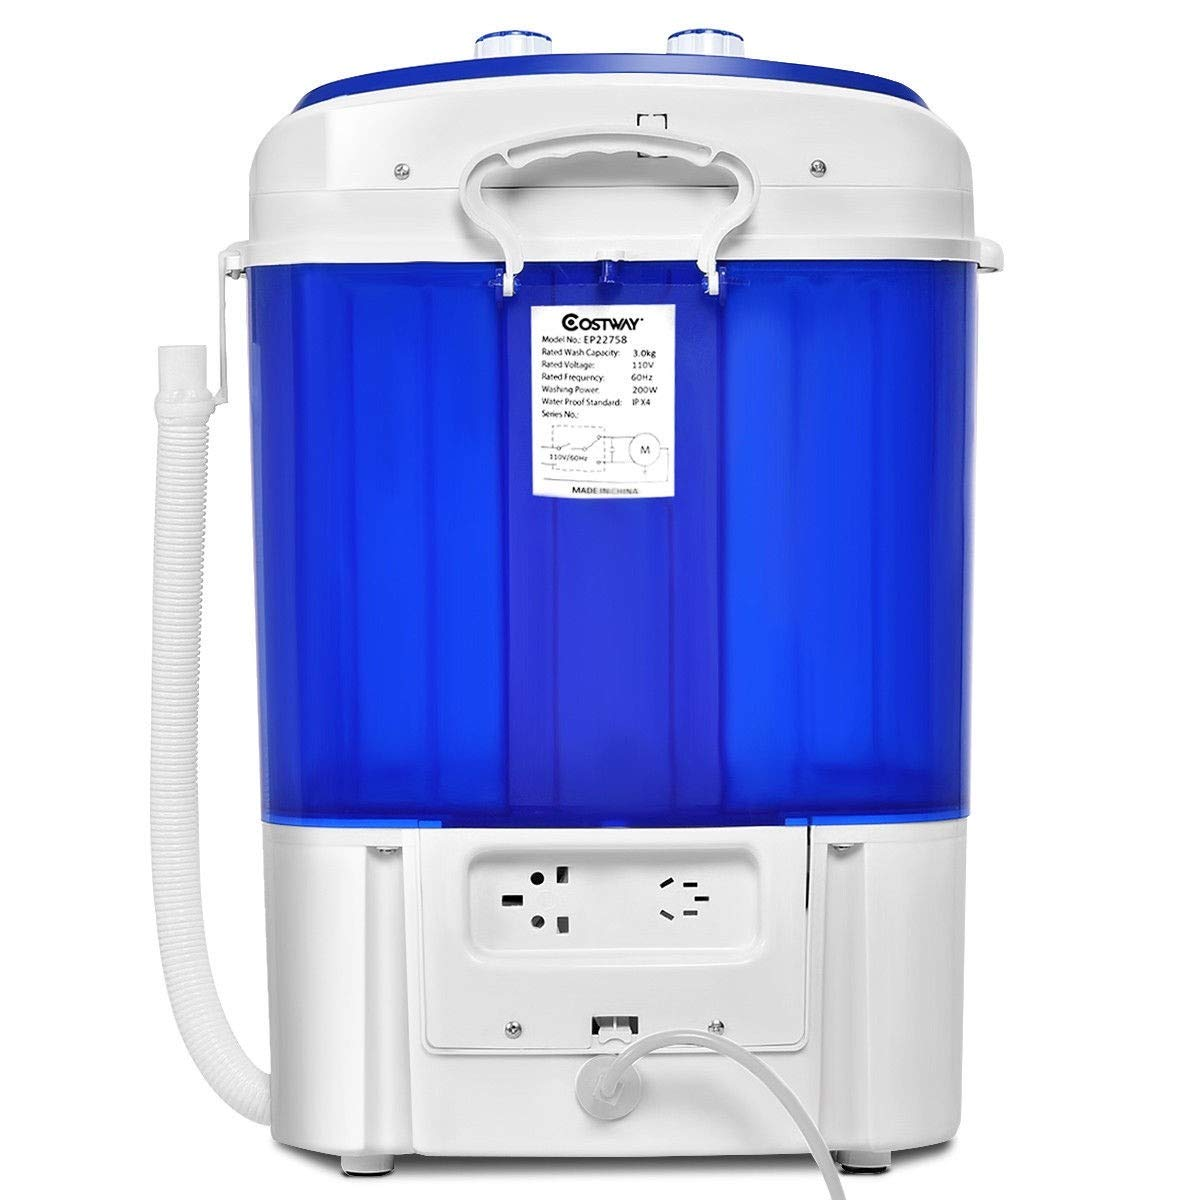 MD Group Mini Portable Washer Washing Machine by MD Group (Image #7)